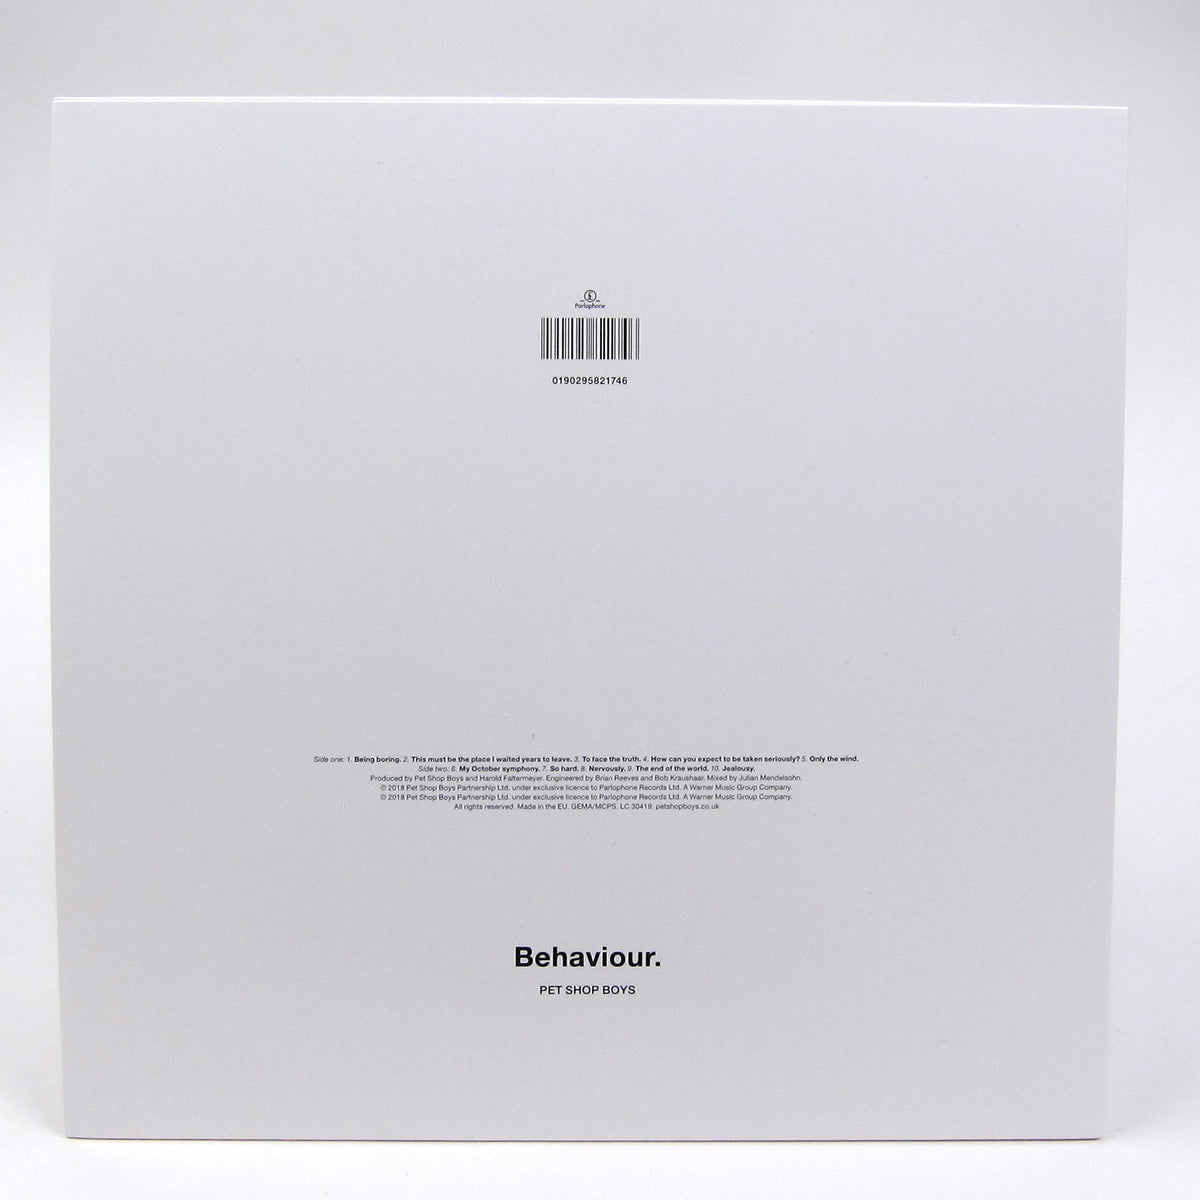 Pet Shop Boys: Behaviour (180g) Vinyl LP